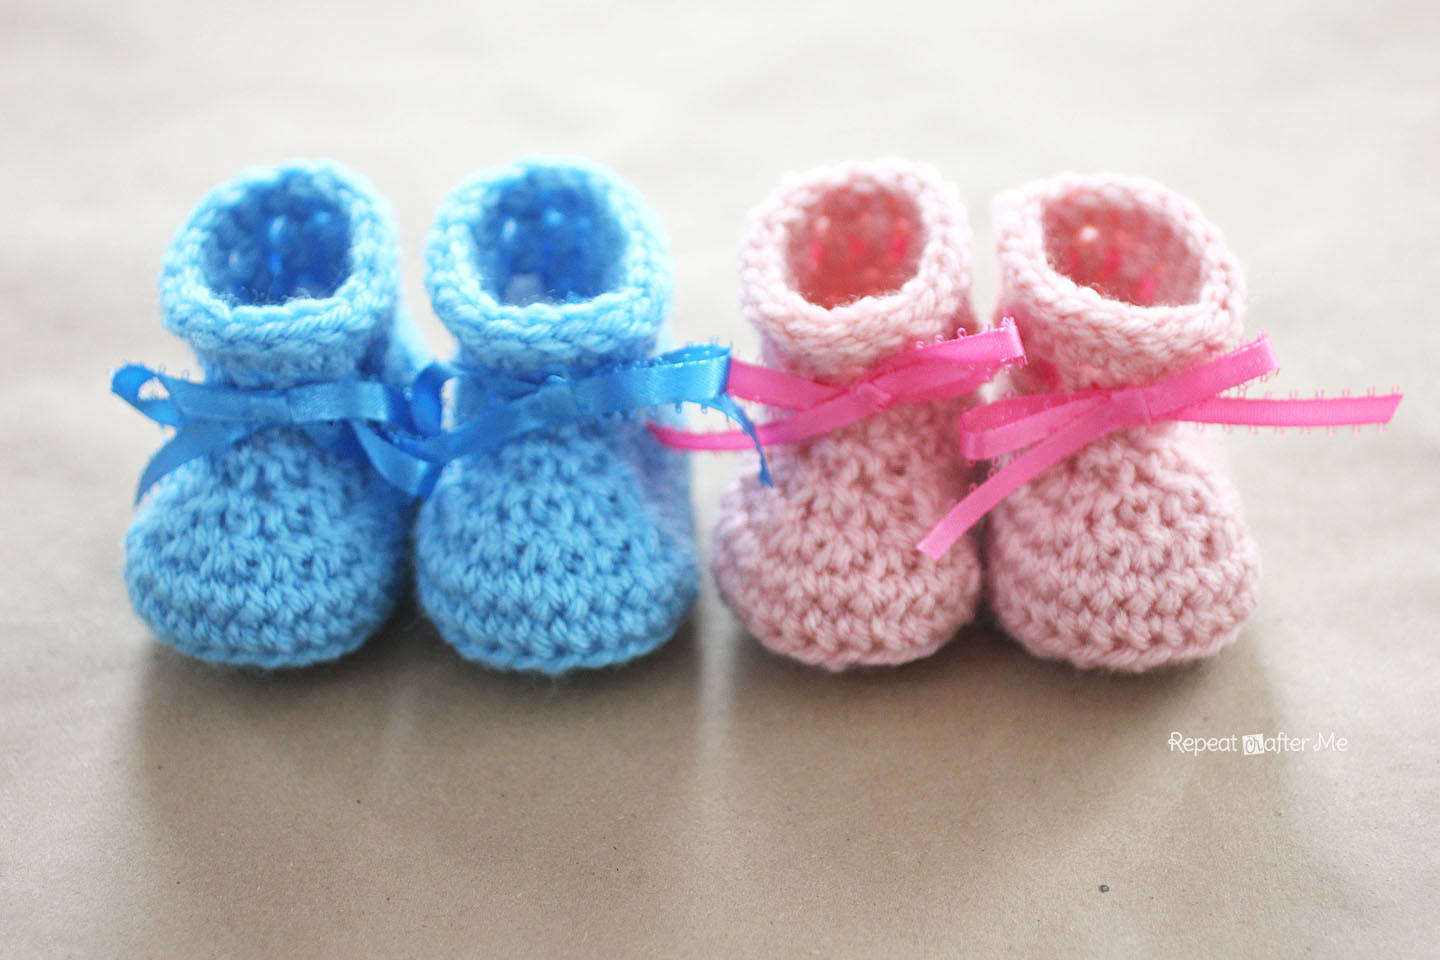 Luxury Crochet Newborn Baby Booties Pattern Repeat Crafter Me Crochet Baby socks Of New Berry Baby Booties Knitting Pattern Easy Crochet Baby socks